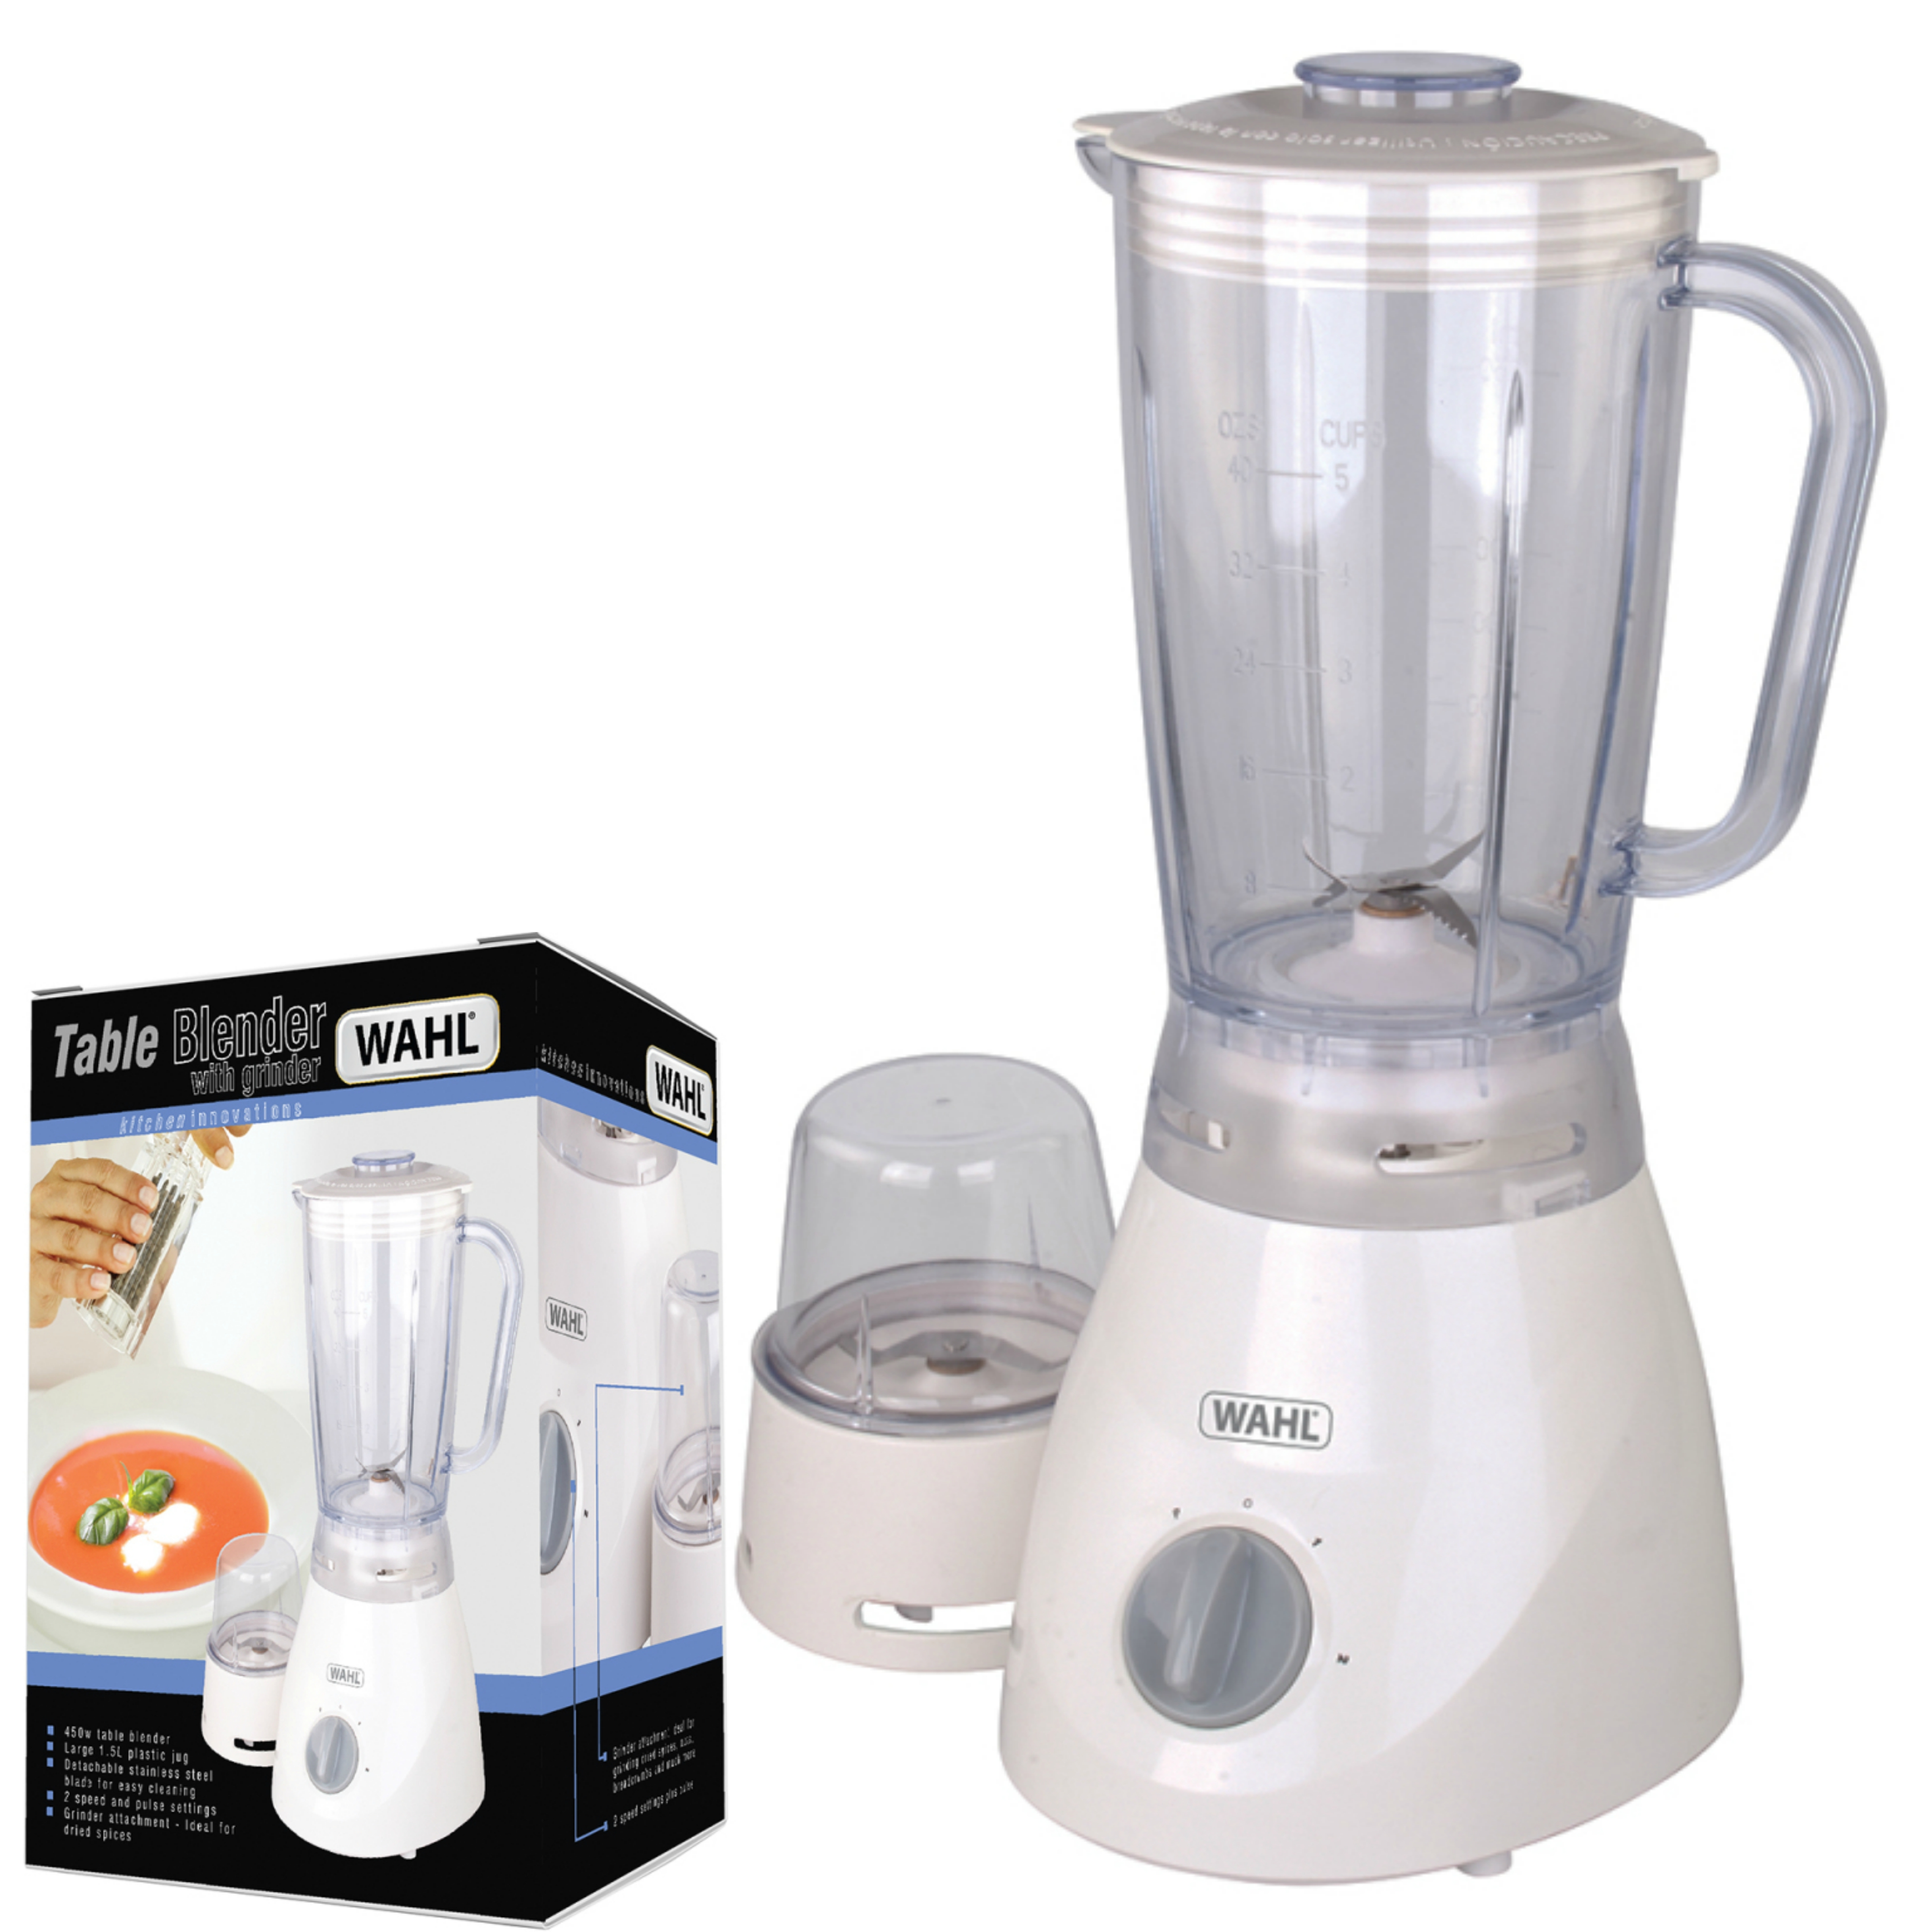 Wahl ZX805 Table Blender|Grinder|2 Speed|Pulse Setting|1.5 L Plastic Jug|450 W|